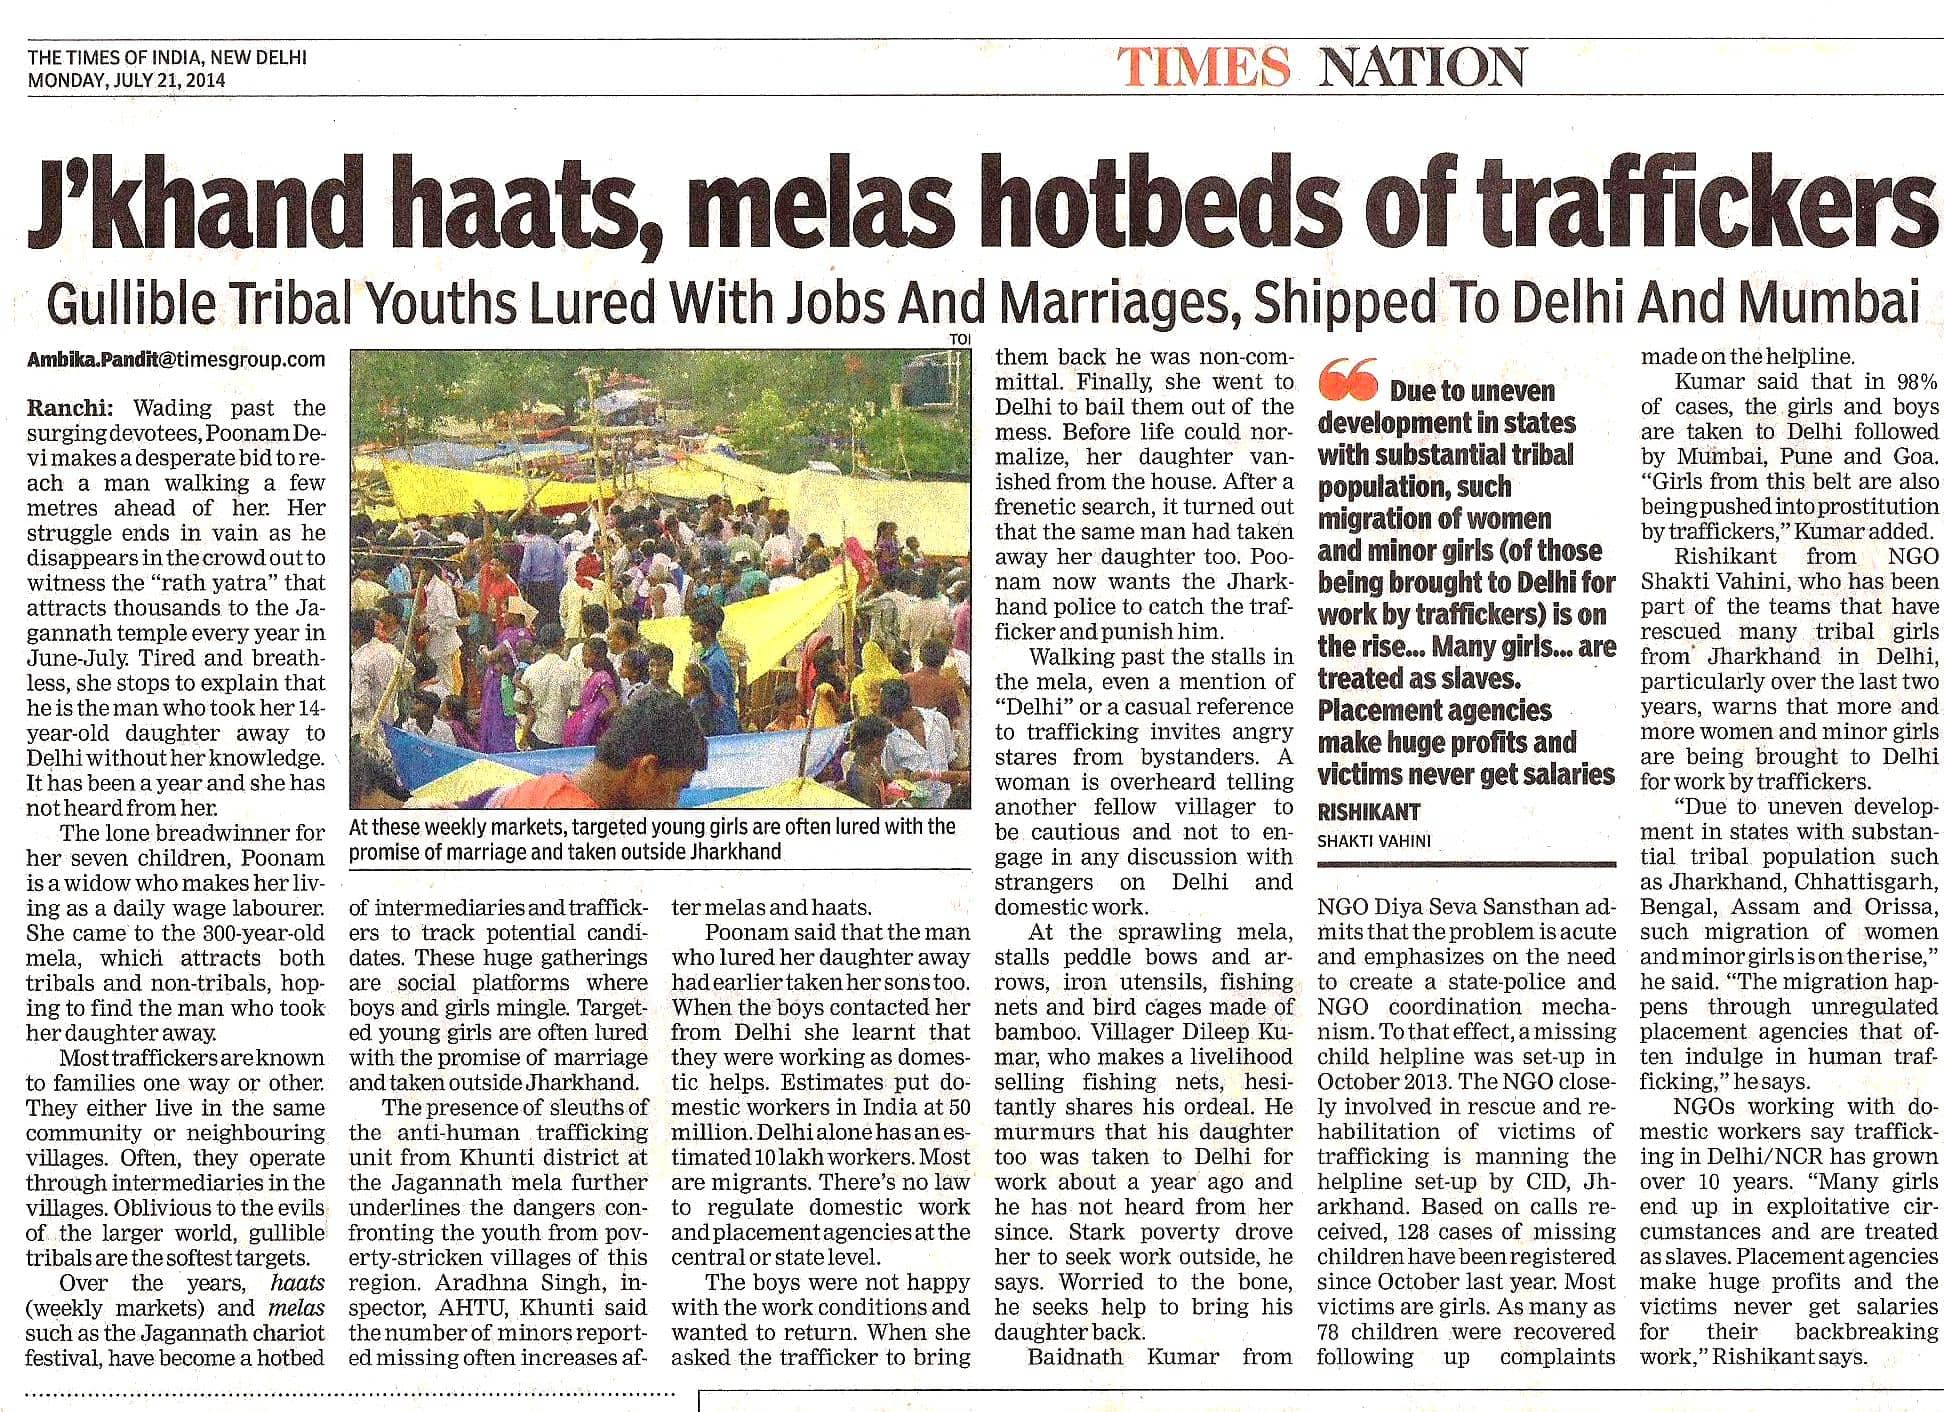 Times of India Article on Human Trafficking from Jharkhand